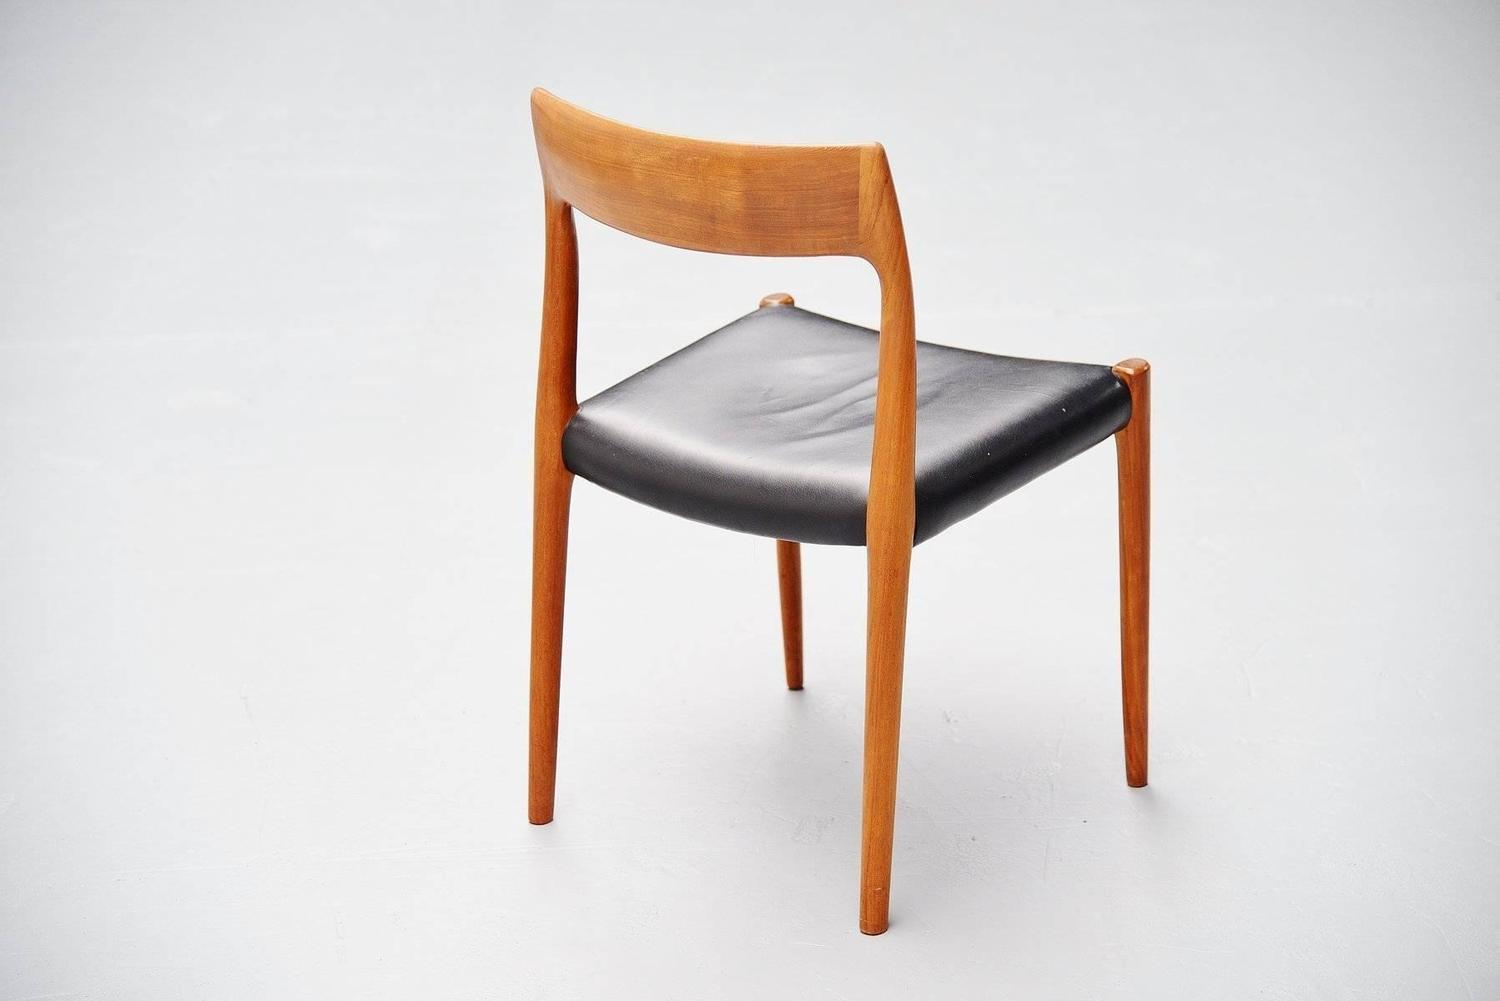 Niels Moller Model 77 Dining Chairs In Teak Denmark 1959 At 1stdibs